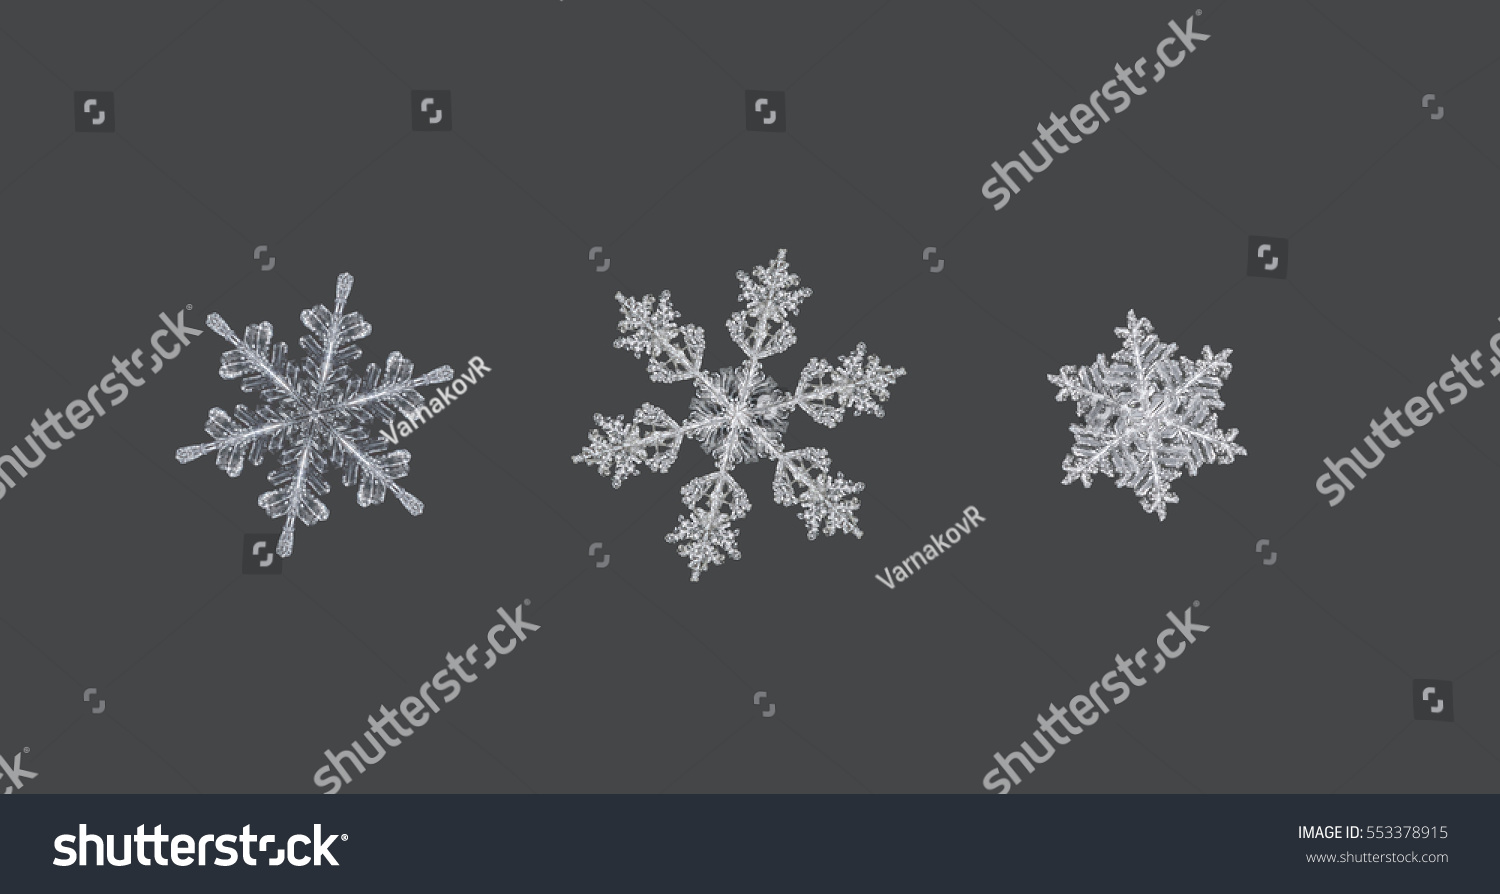 real snowflakes background - photo #23